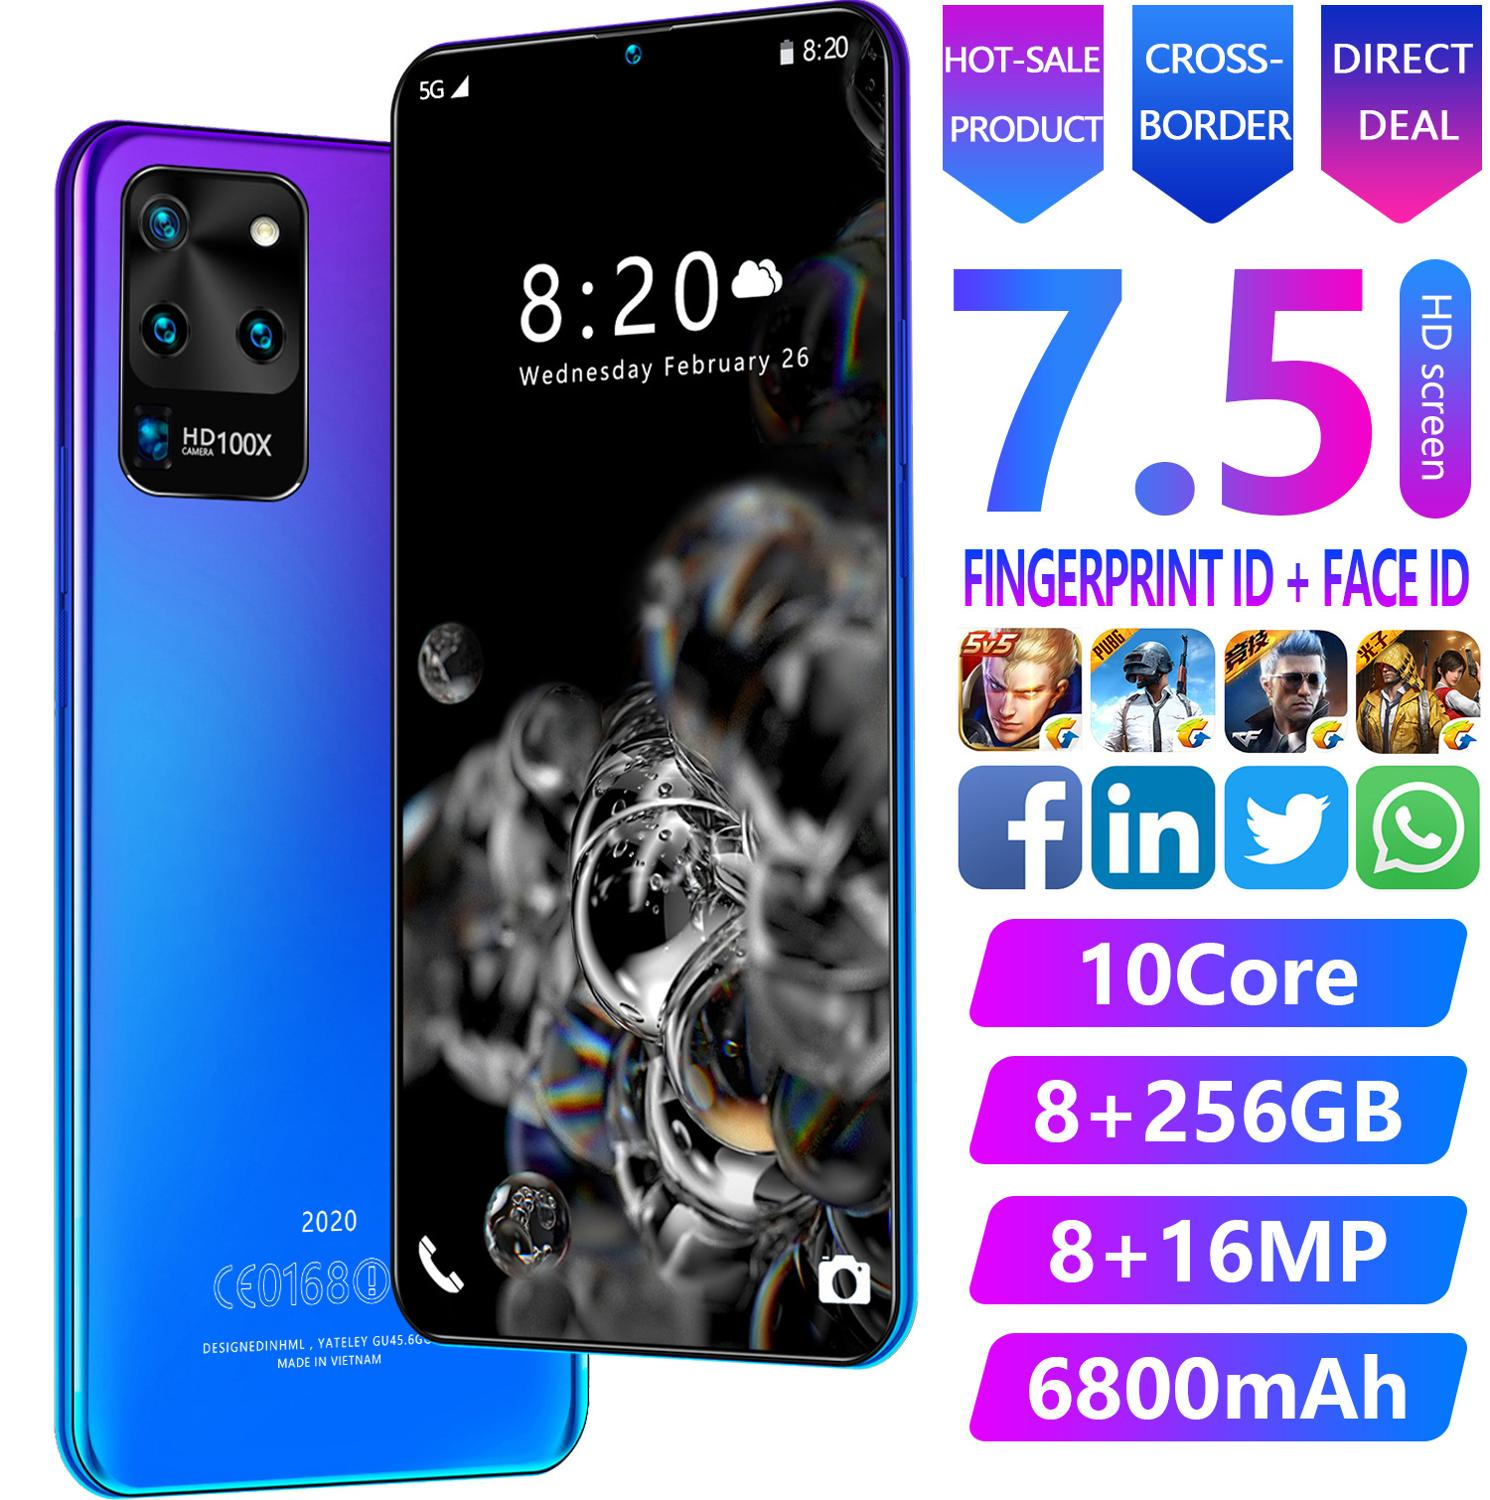 7.5-inch Galay S20 Internet shipping worldwide 8GB RAM 256GB ROM Octa Core 4 camera Snapdragon 855 smartphone (with phone case)